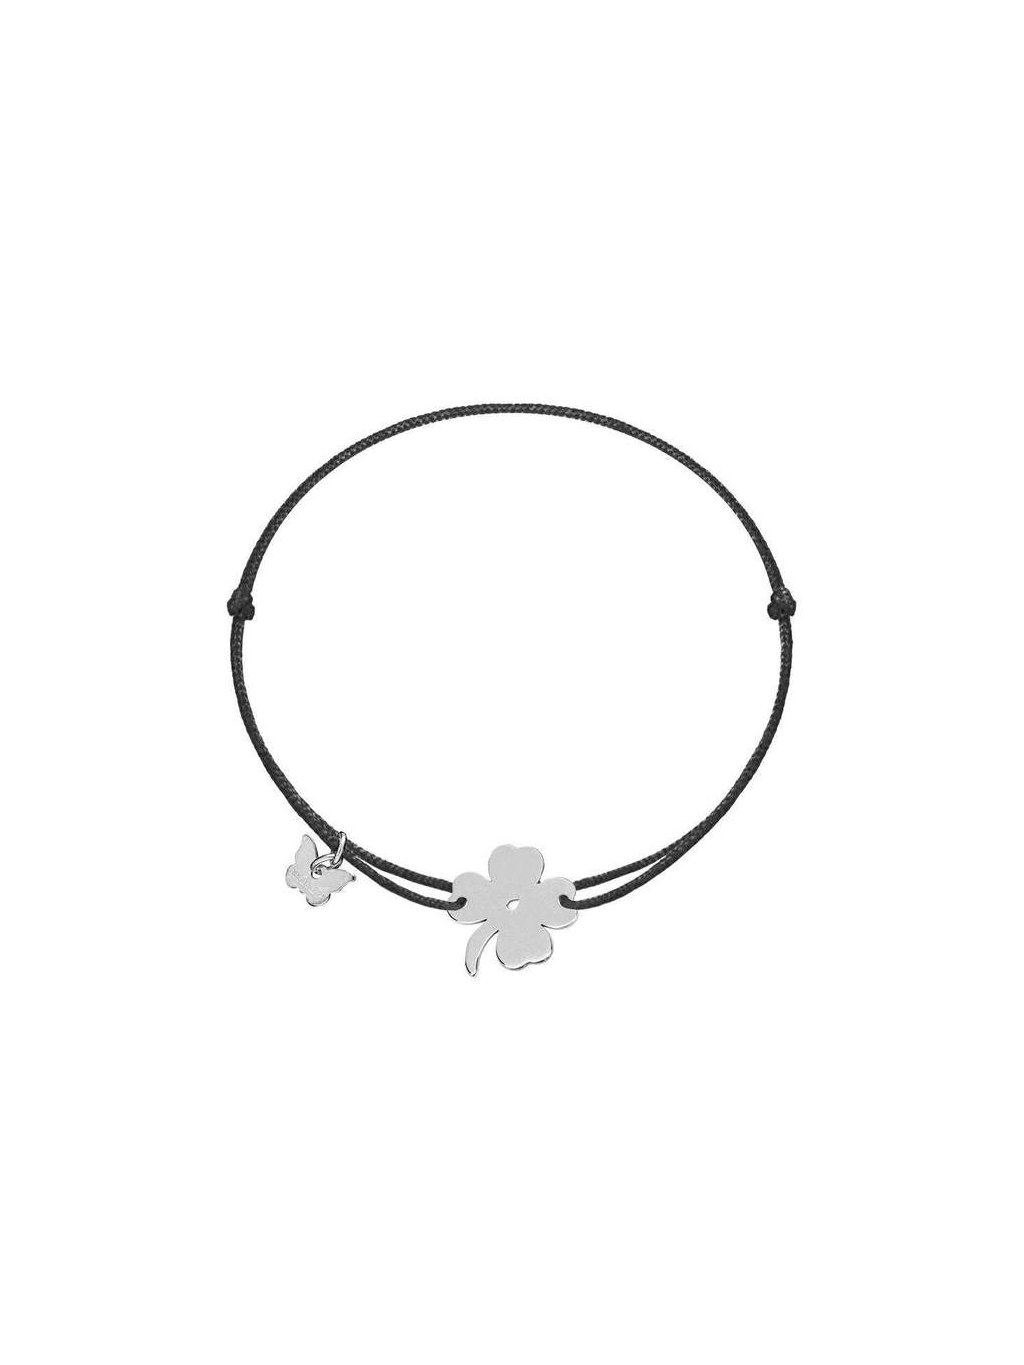 Lucky Clover bracelet white gold plated on black 700x